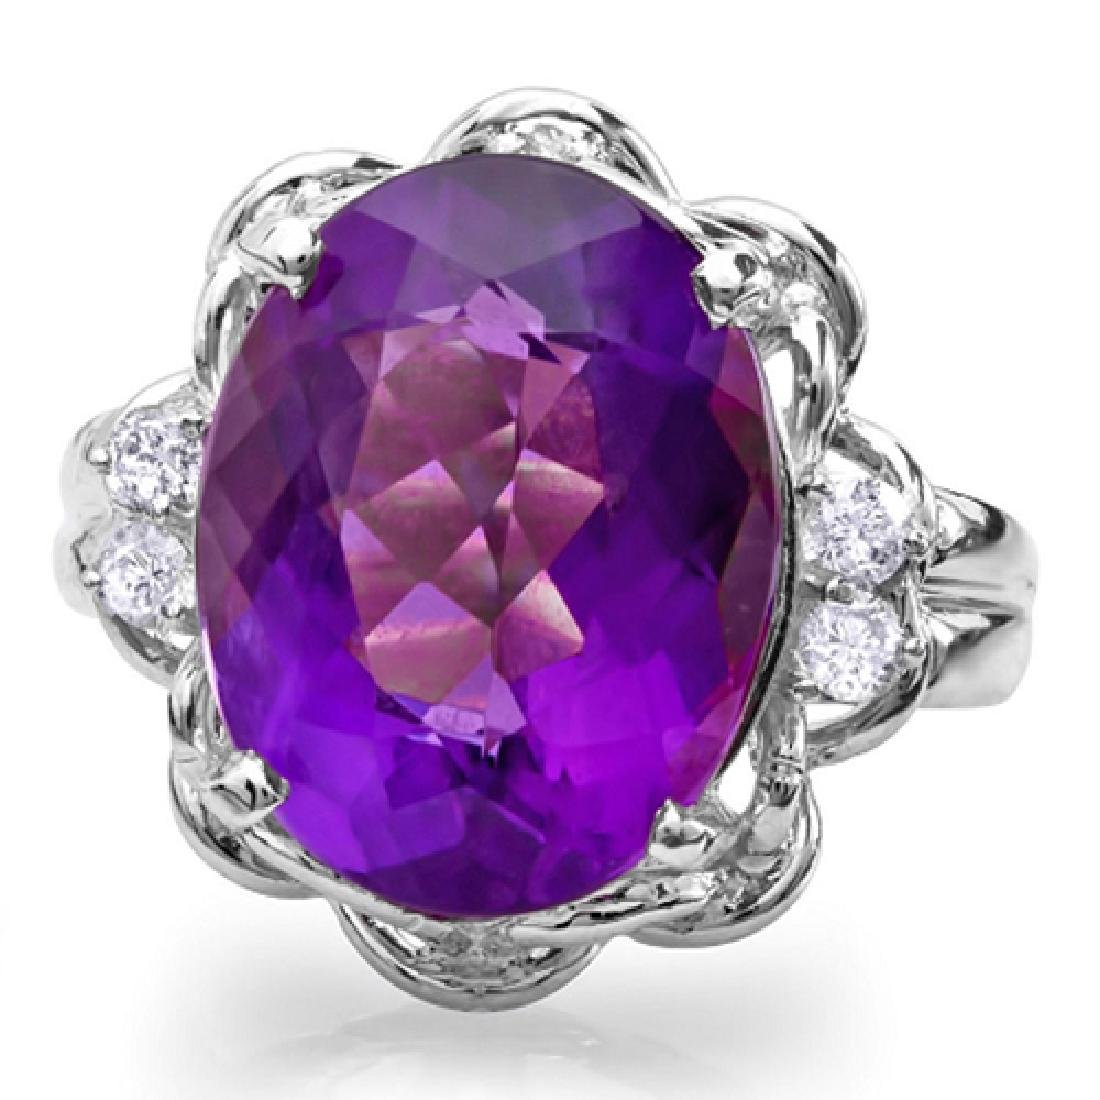 9.23 Carat Natural Amethyst 18K Solid White Gold